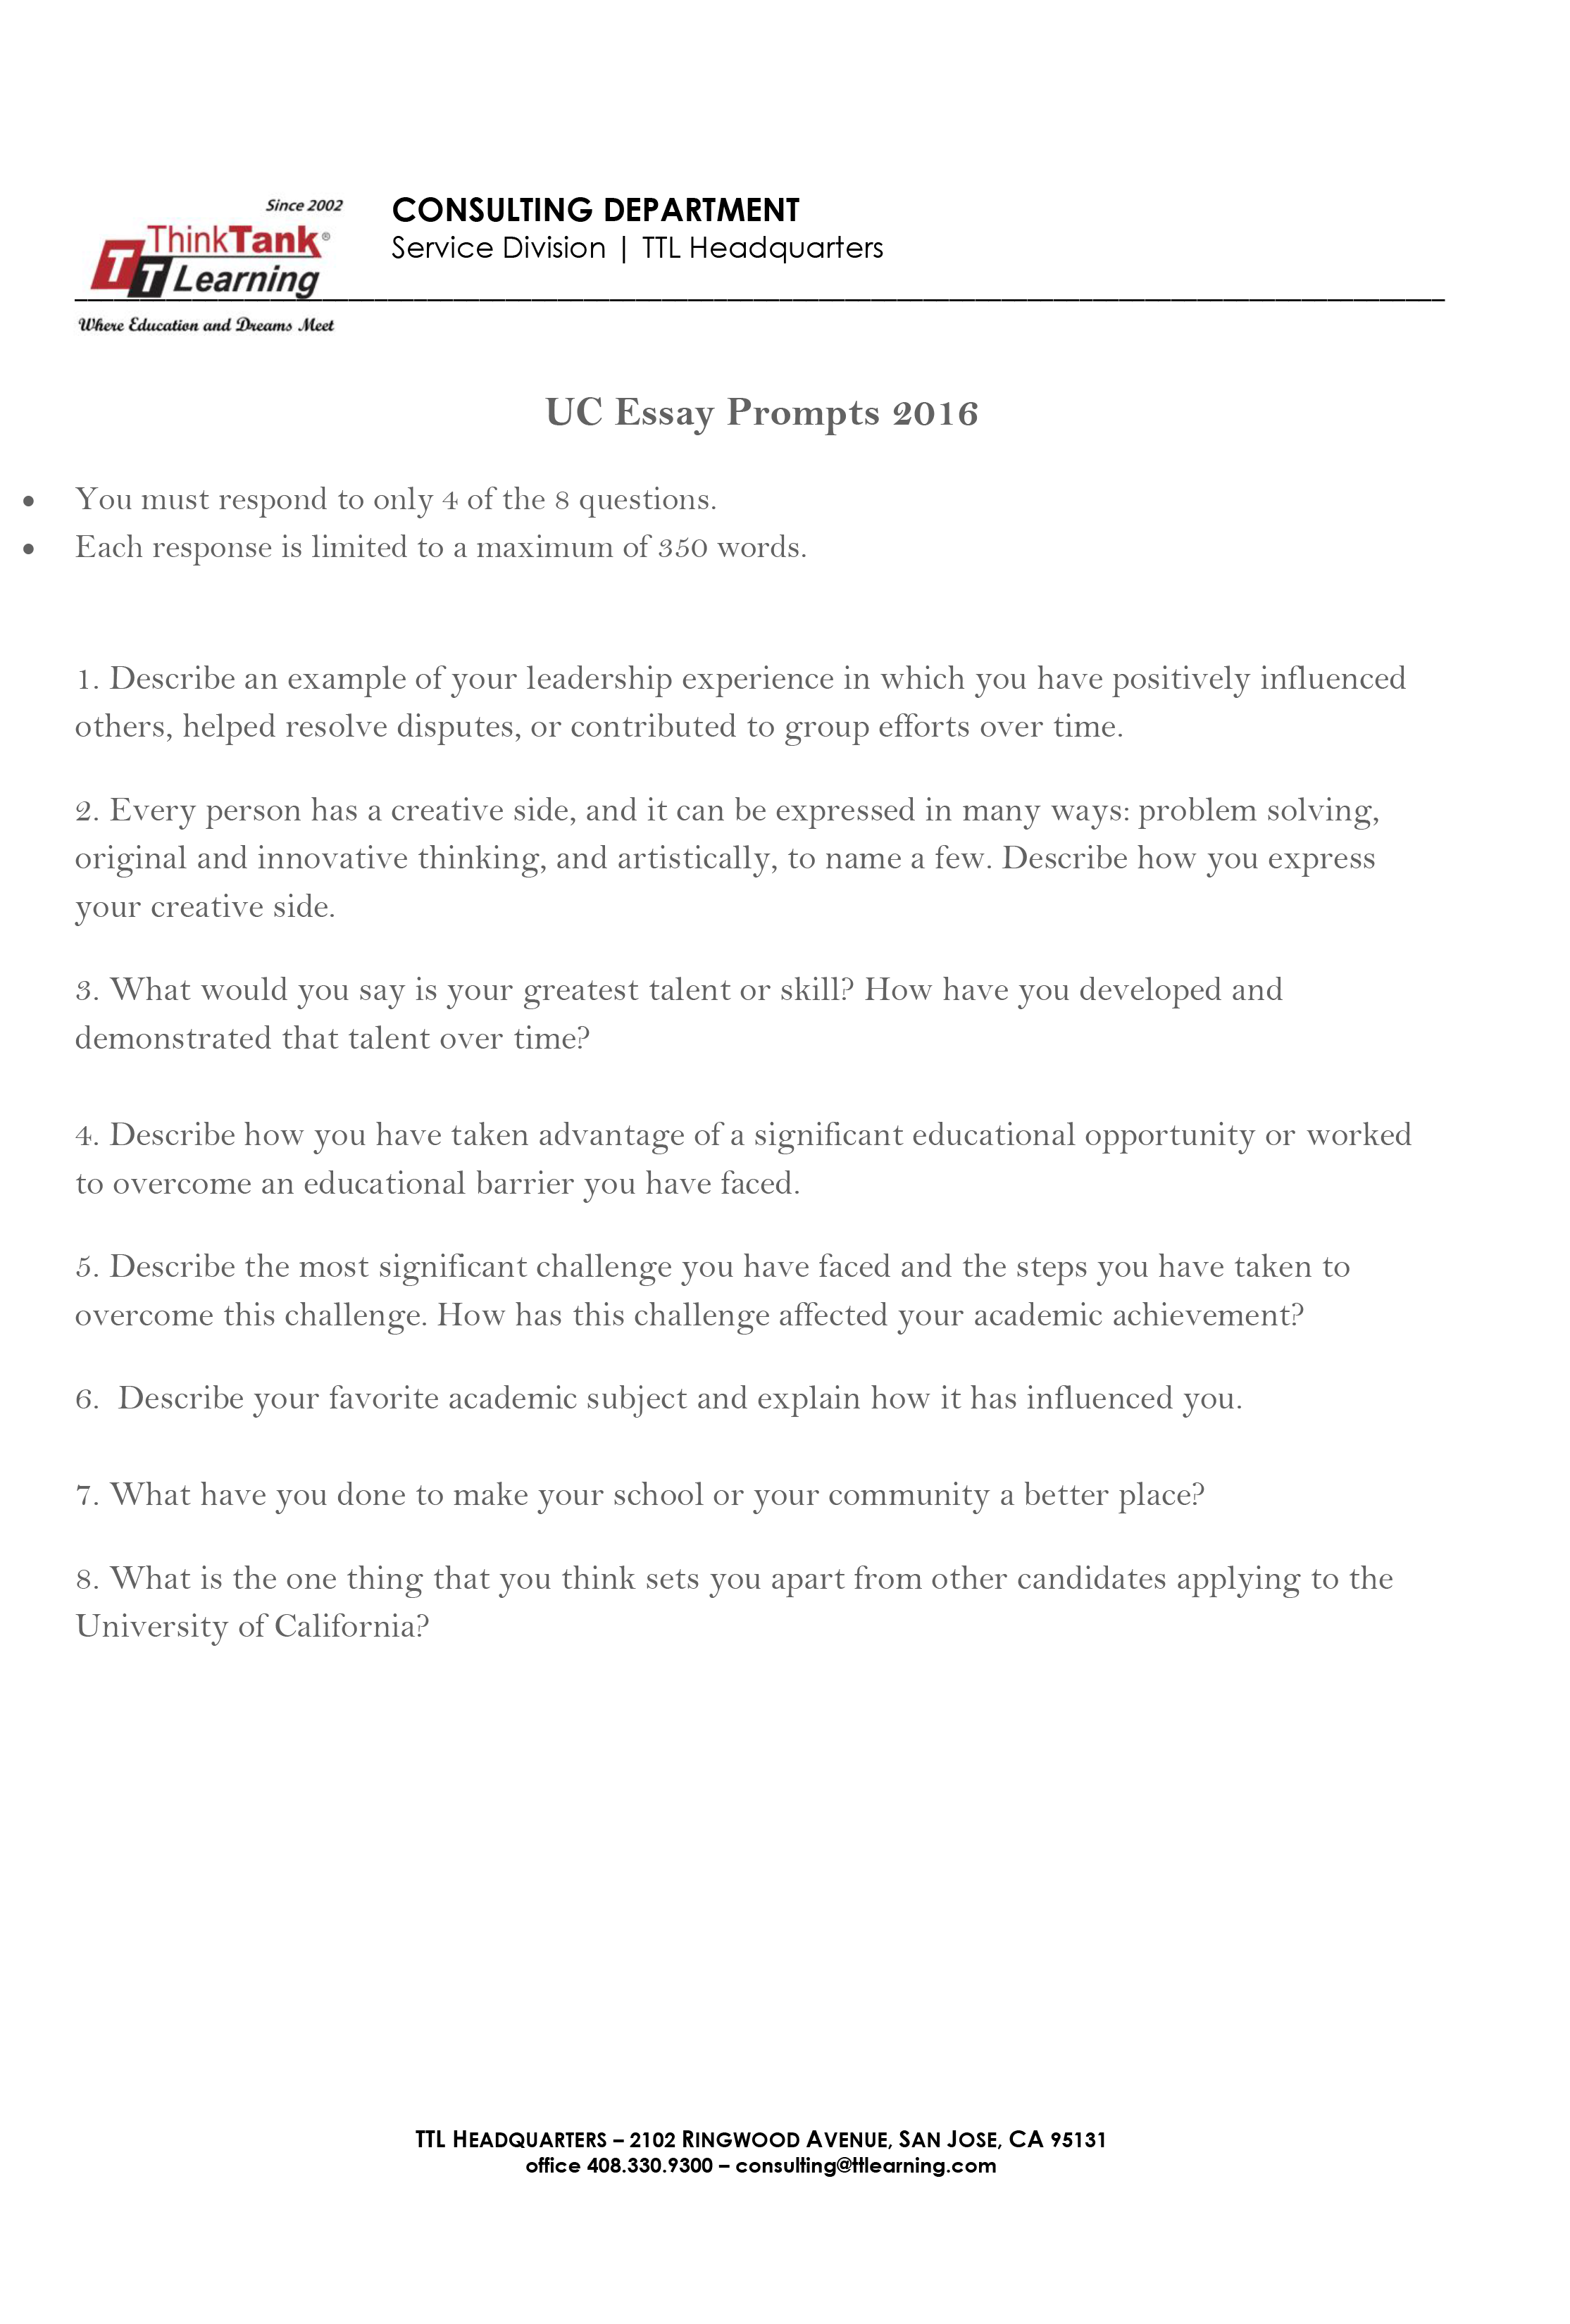 015 Essay Example Ucla Prompt Uc Prompts 2016 2 Fascinating College Application 2018-19 2017 Full